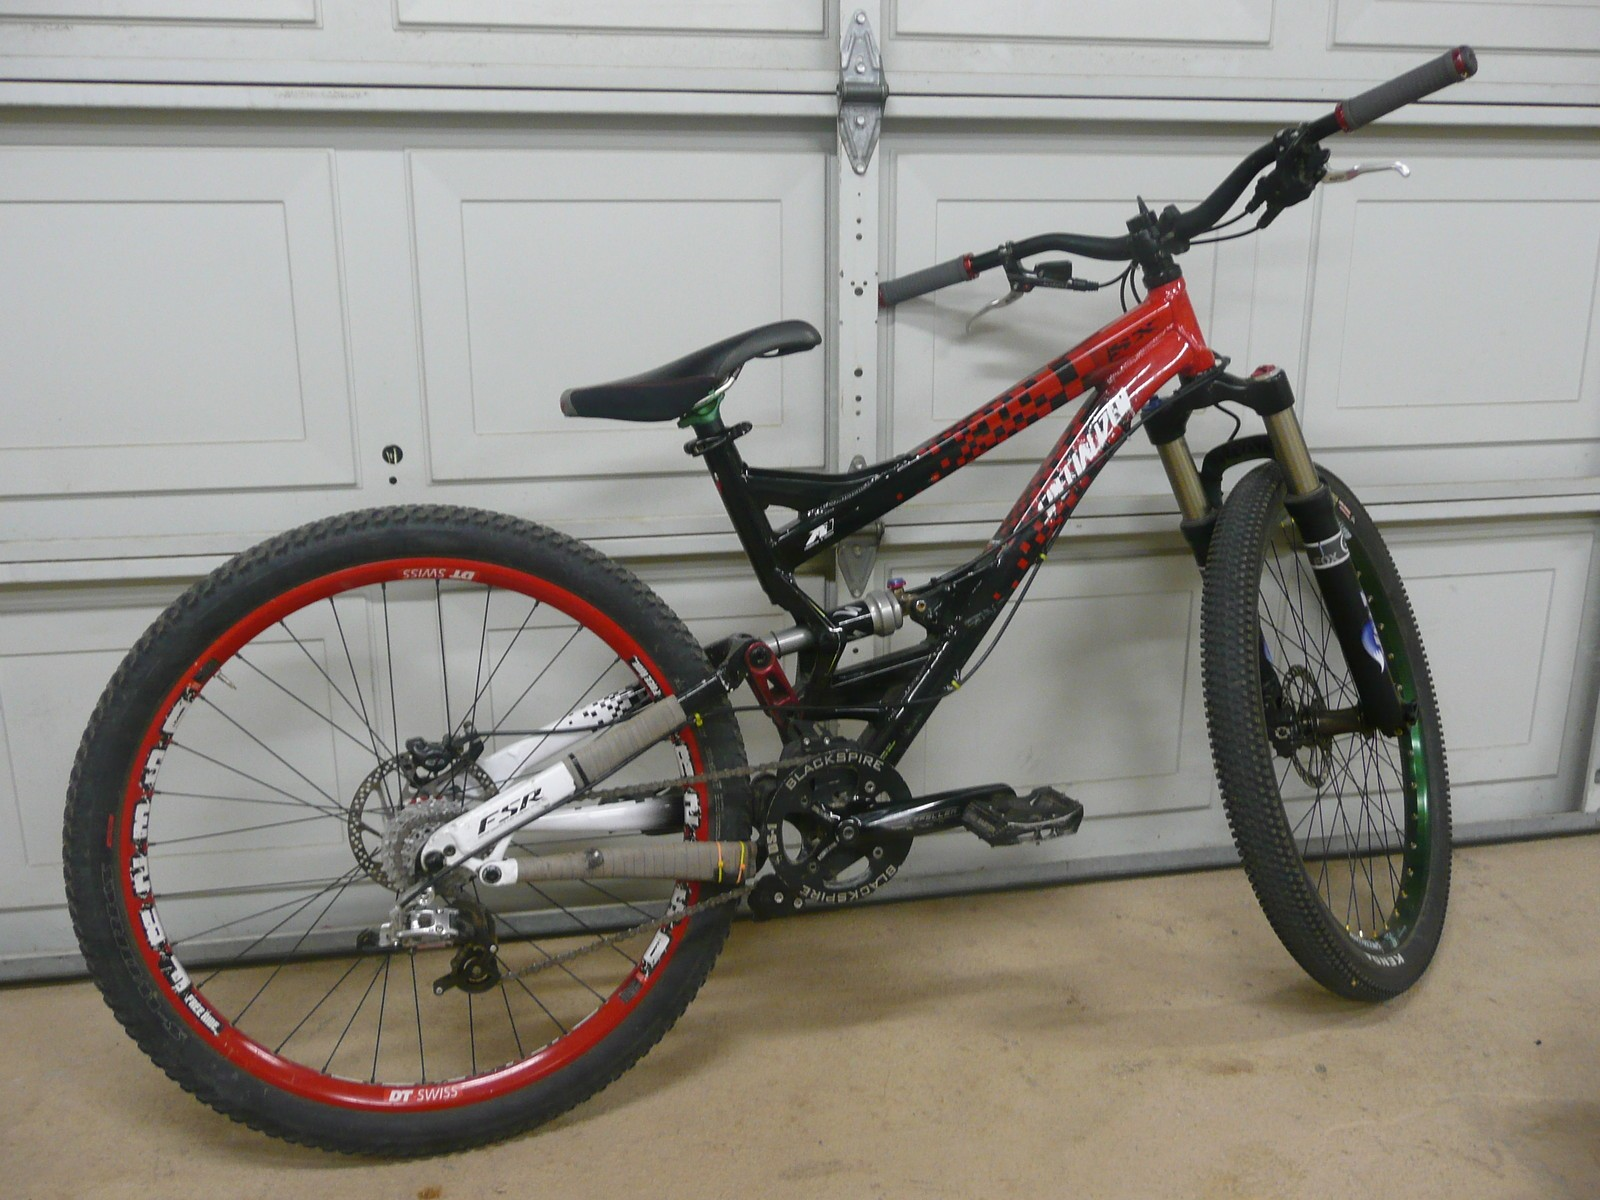 Kevinridesfelt's Specialized SX - Awesome Late-Model Specialized Bikes - Vital Member Builds - Mountain Biking Pictures - Vital MTB